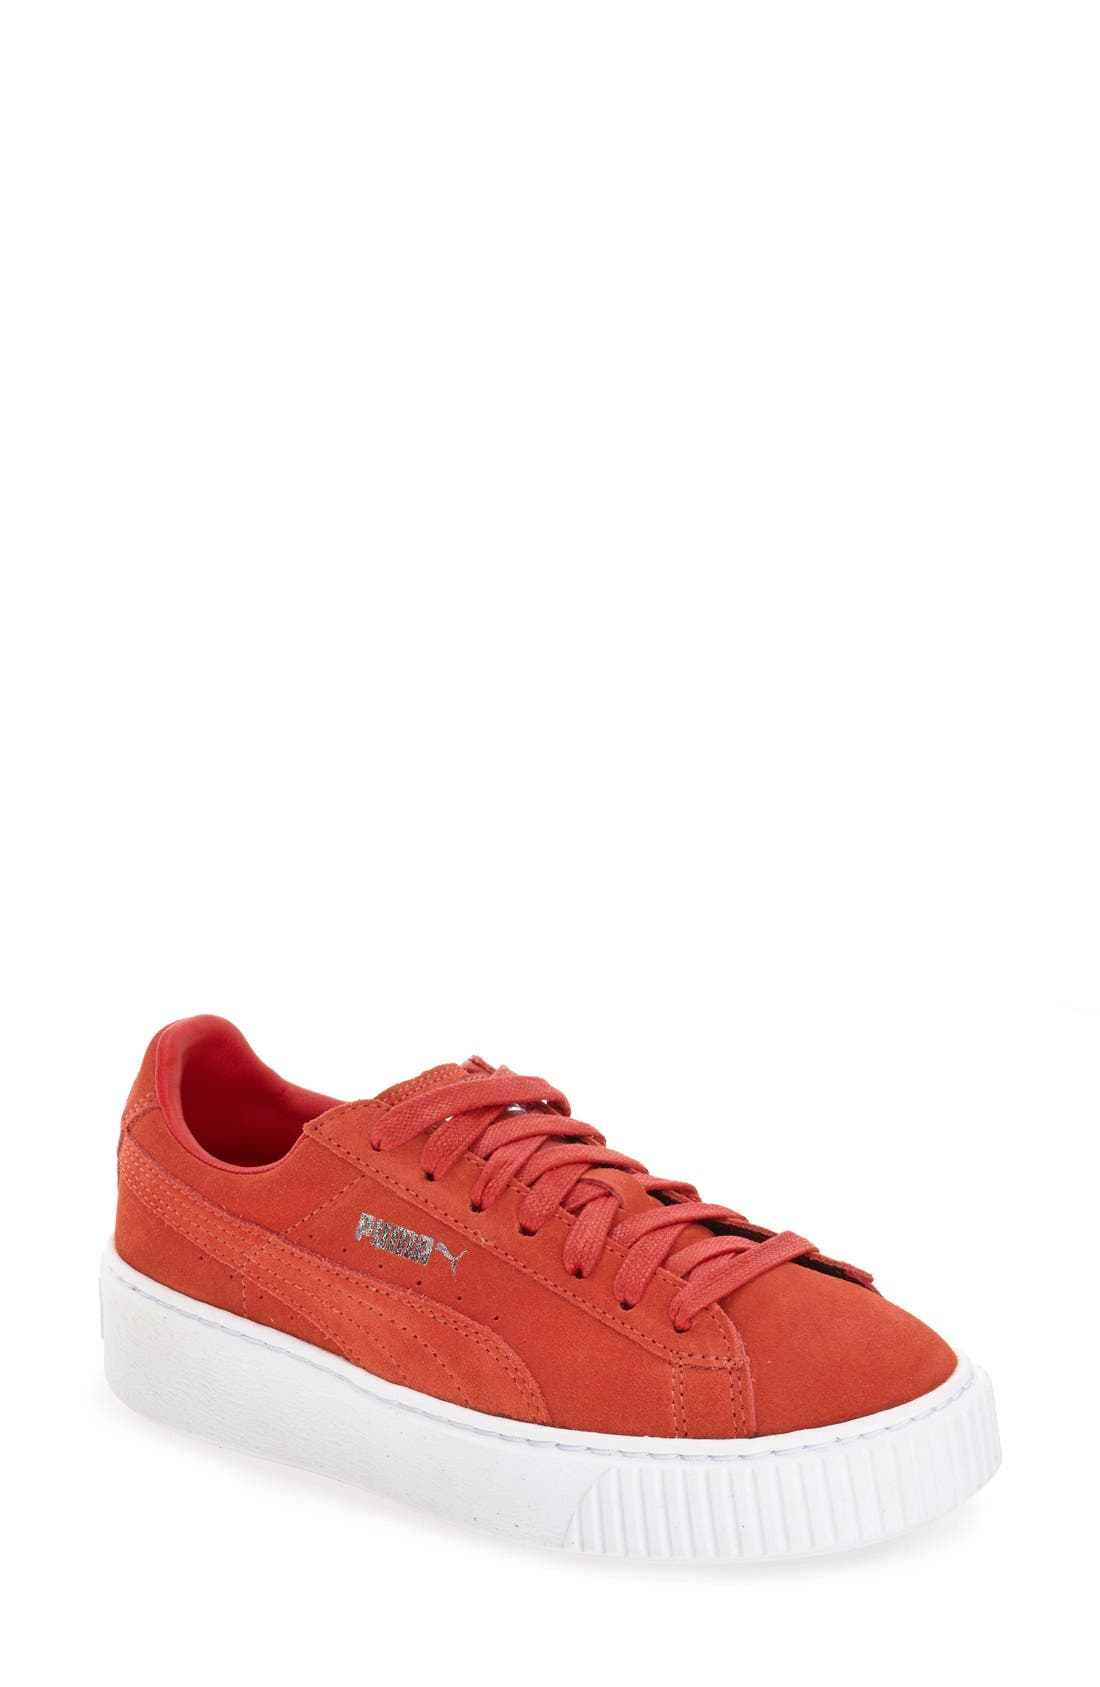 Alternate Image 1 Selected - PUMA Suede Platform Sneaker (Women)